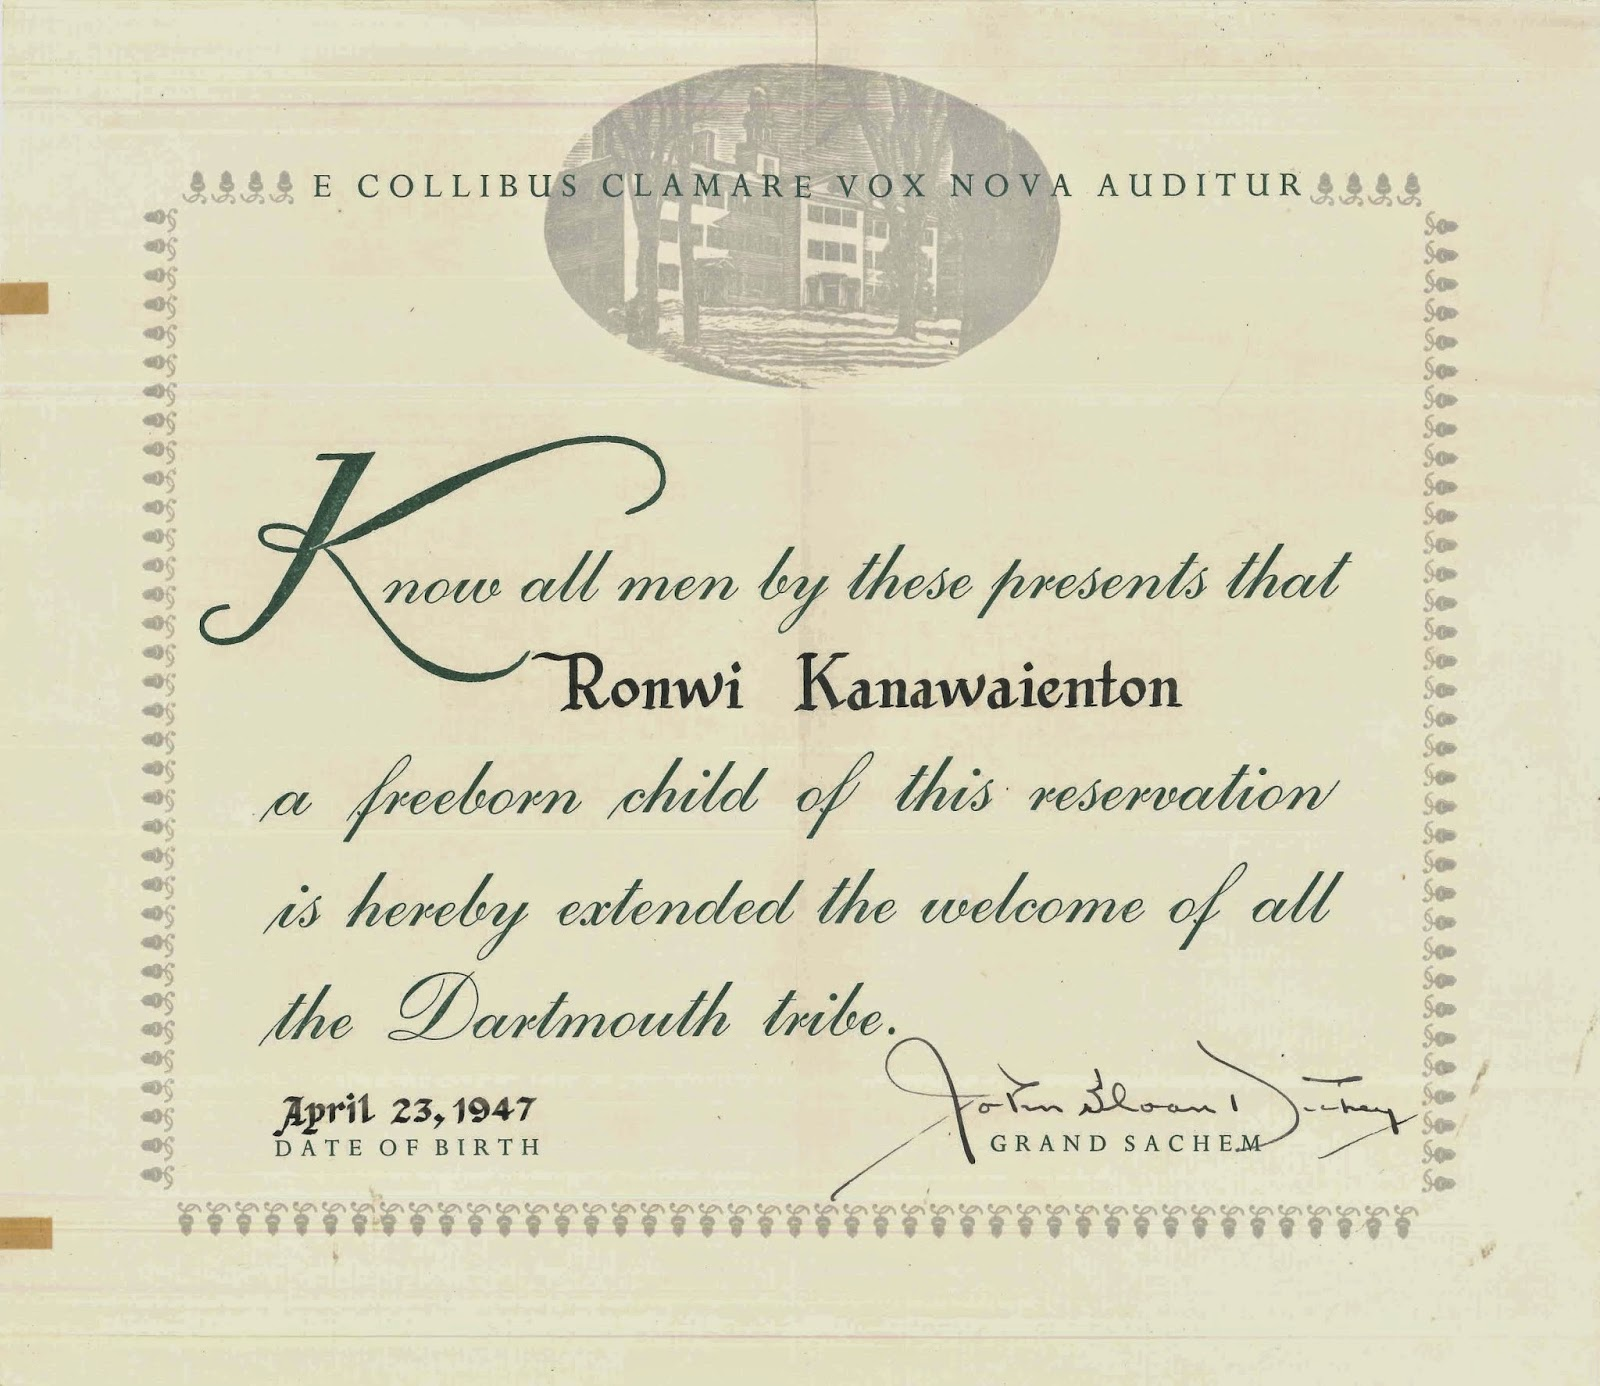 The declaration of welcome to Ronwi Kanawaienton.